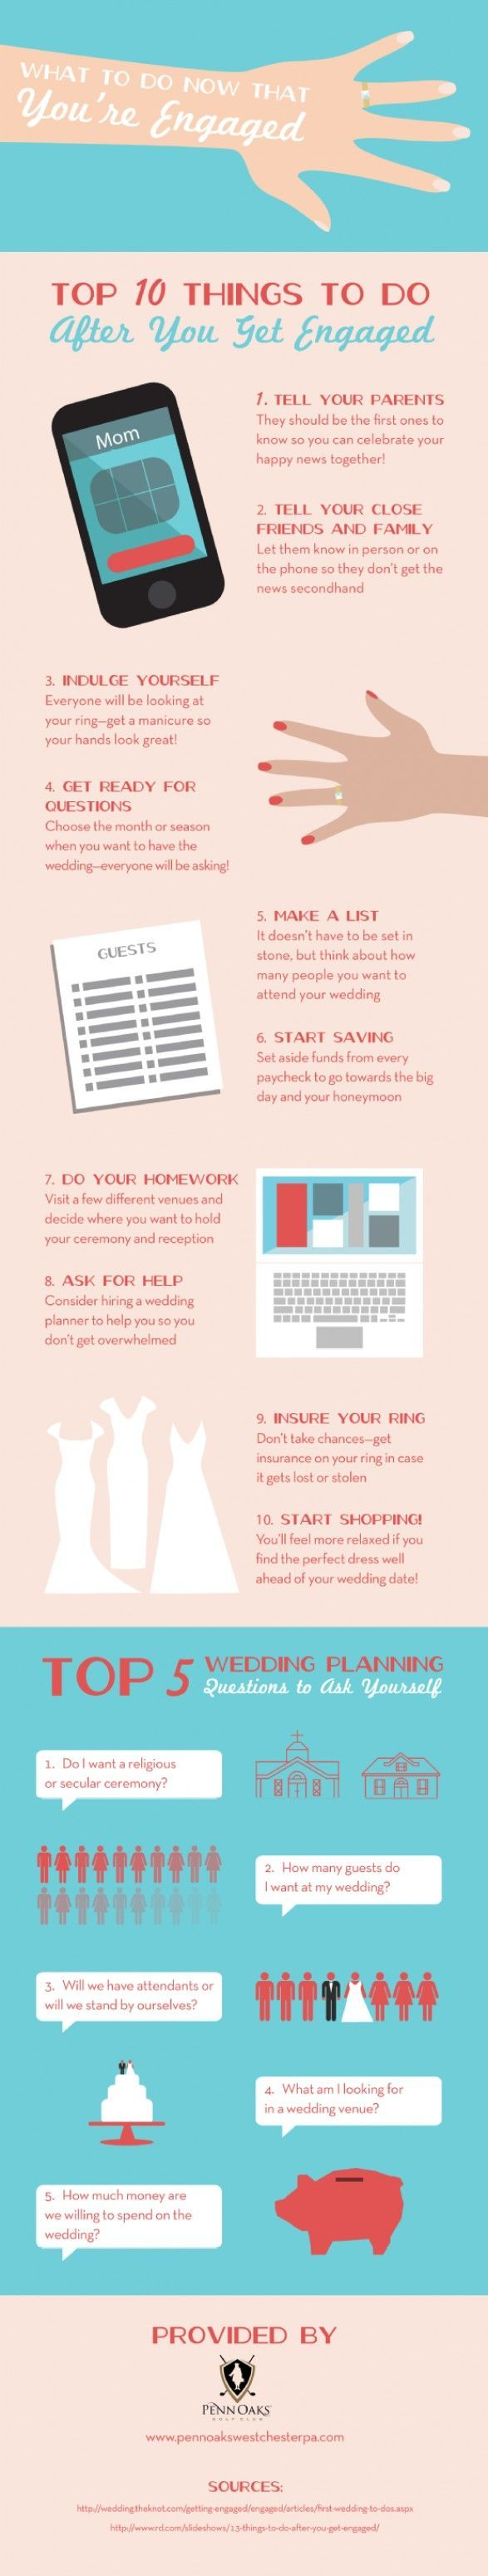 Trying to figure out the next steps after the engagement? These are some great tips to get you started.